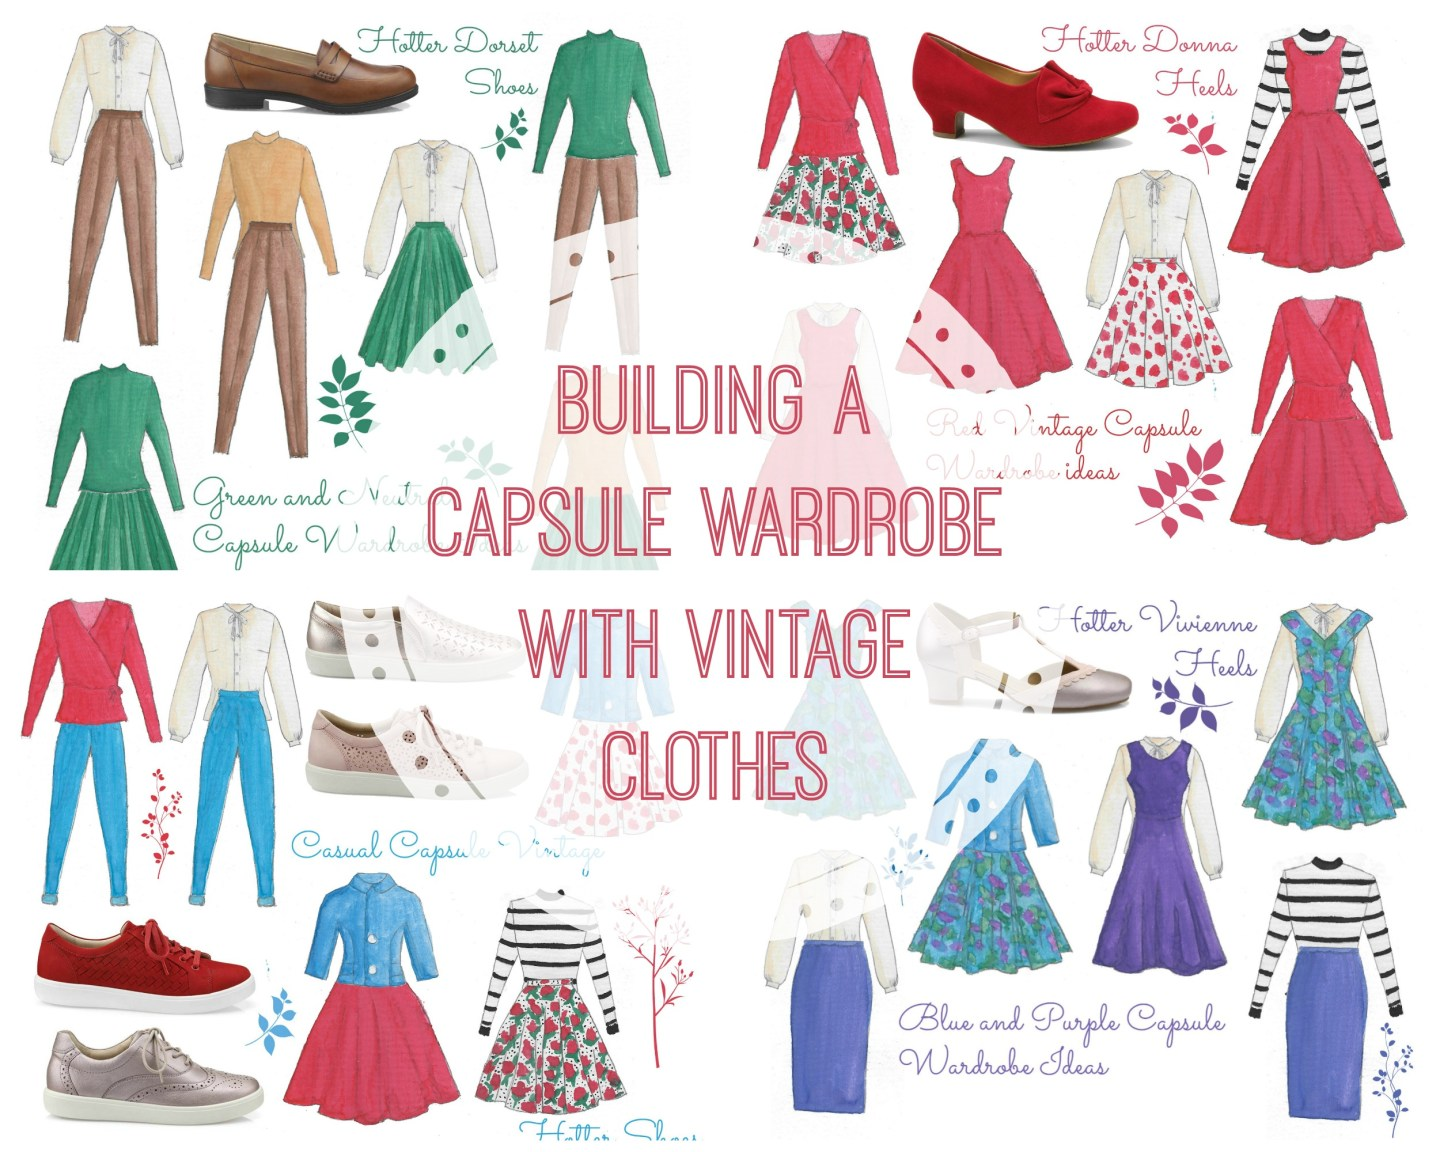 How to Build a Capsule Wardrobe Using Vintage Clothes